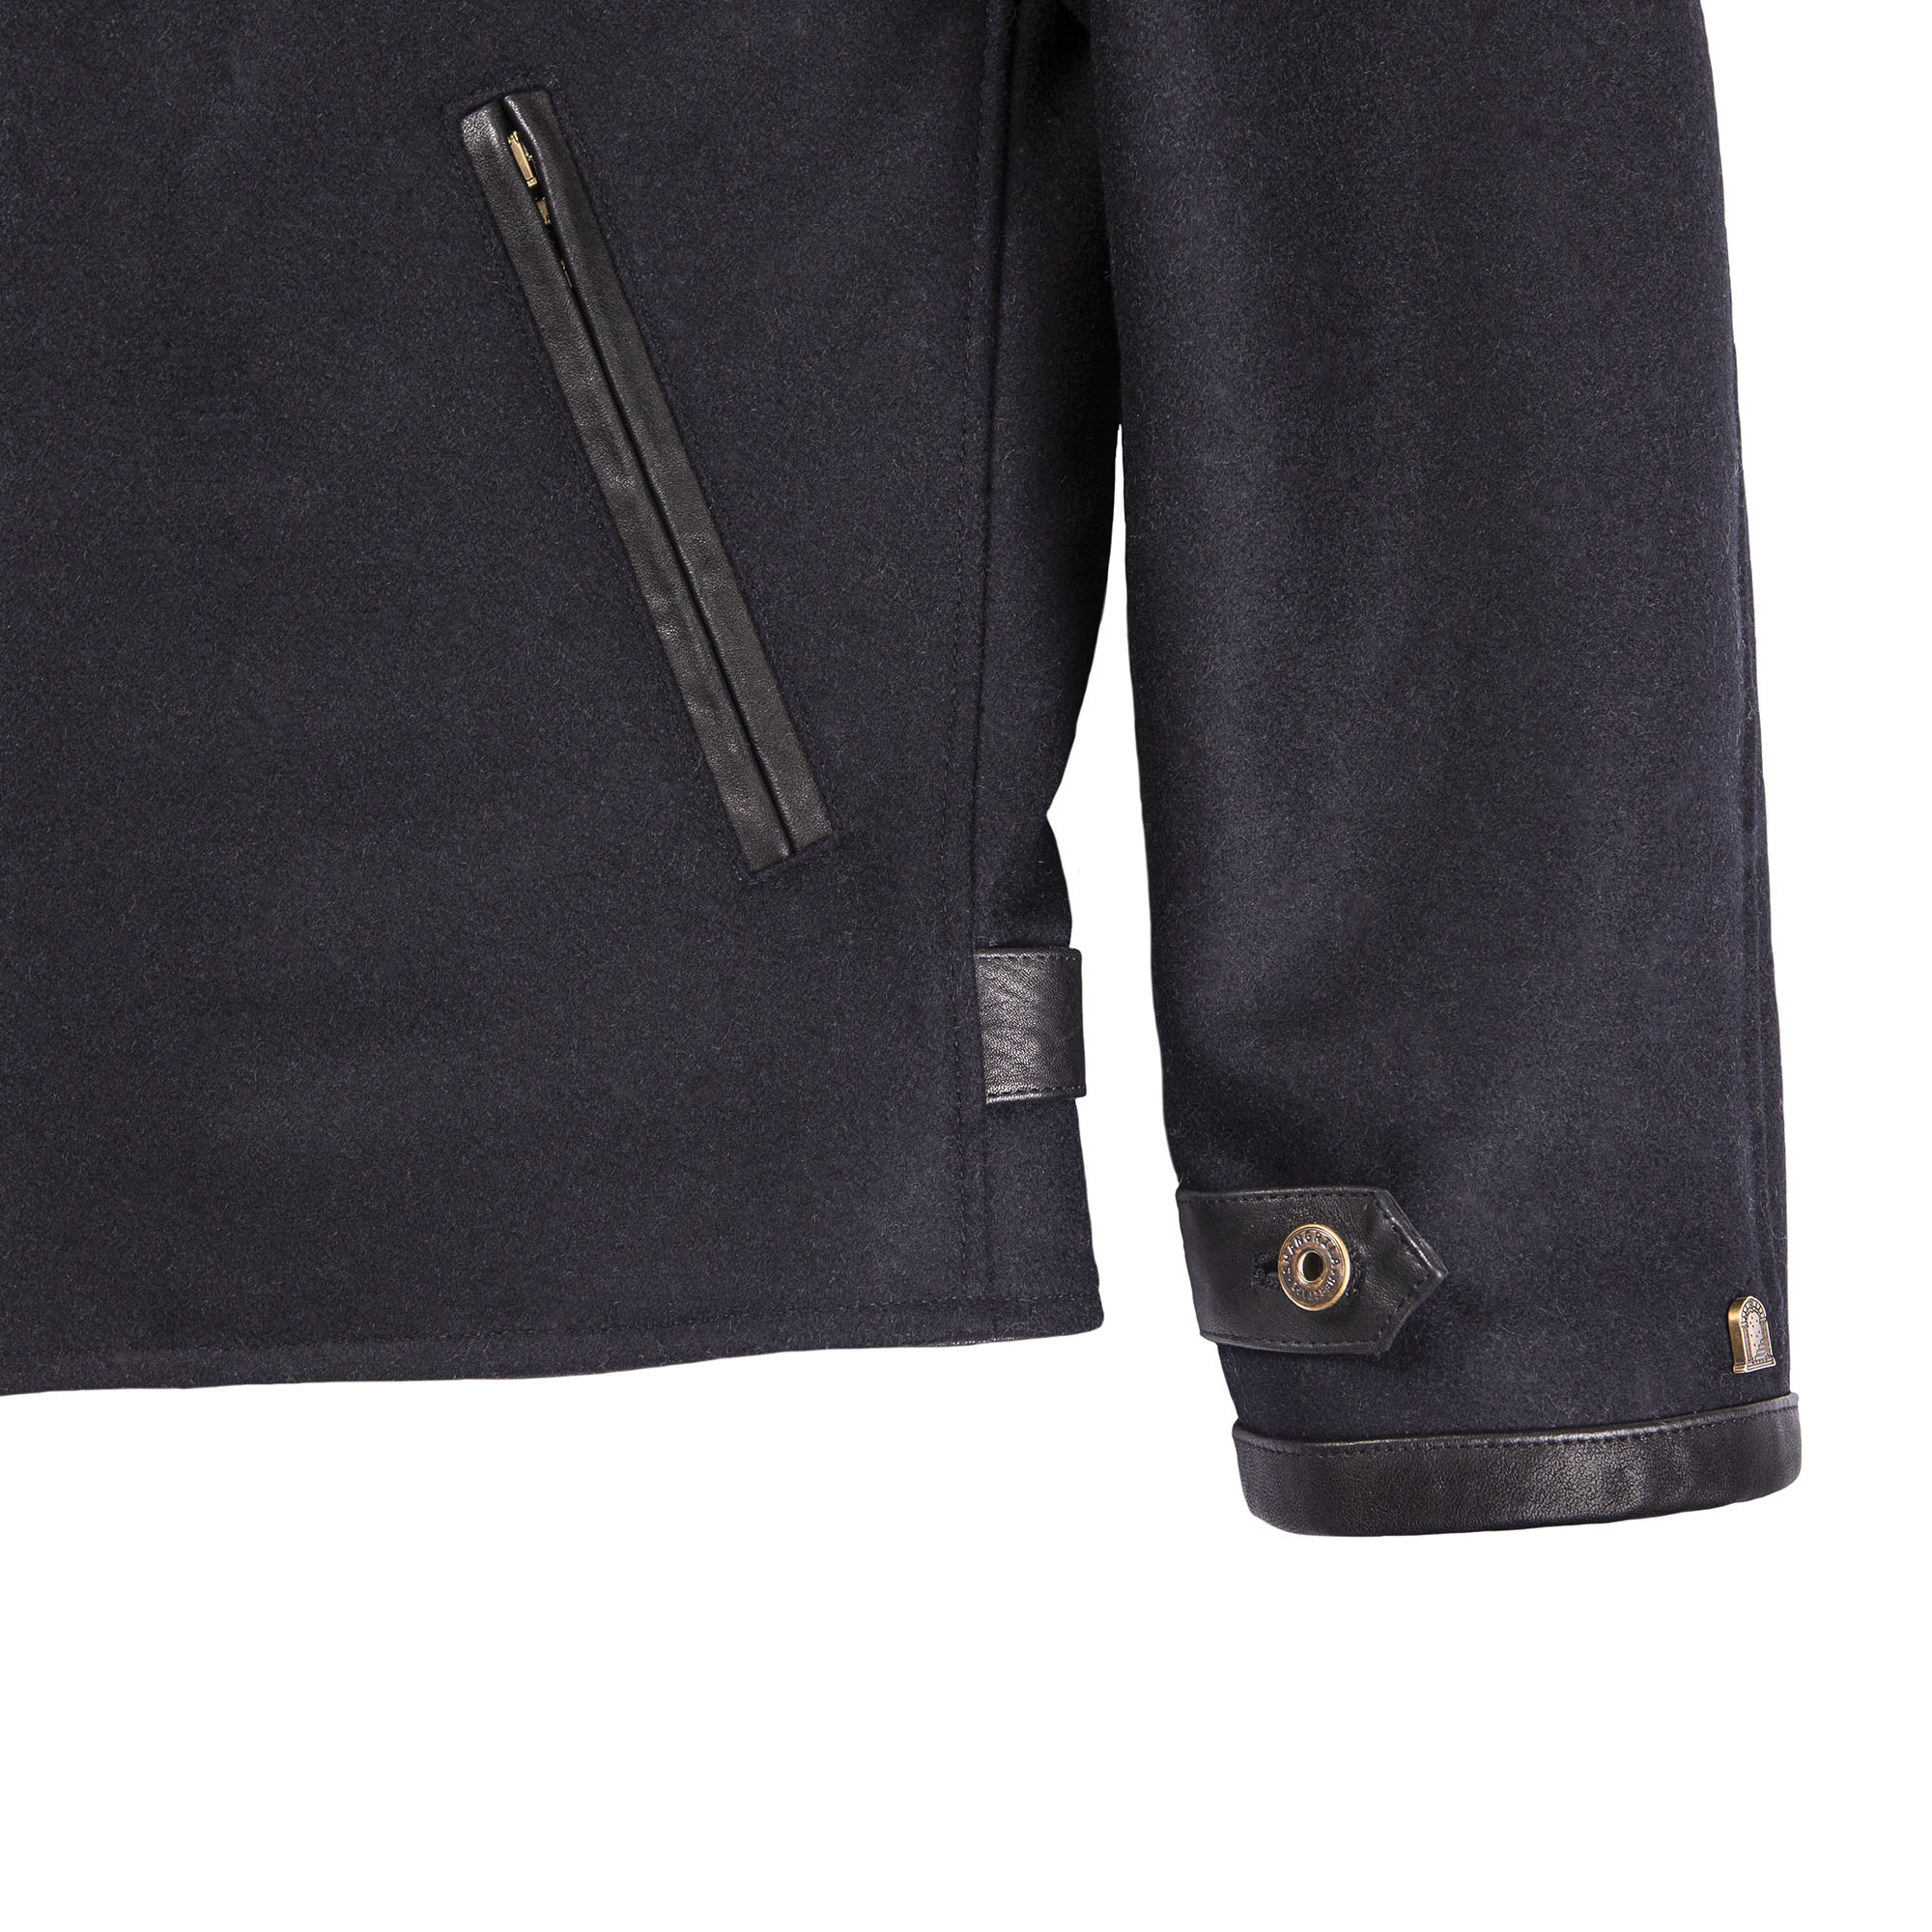 shangri-la-heritage-varenne-navy-blue-wool-jacket-still-life-front-bottom